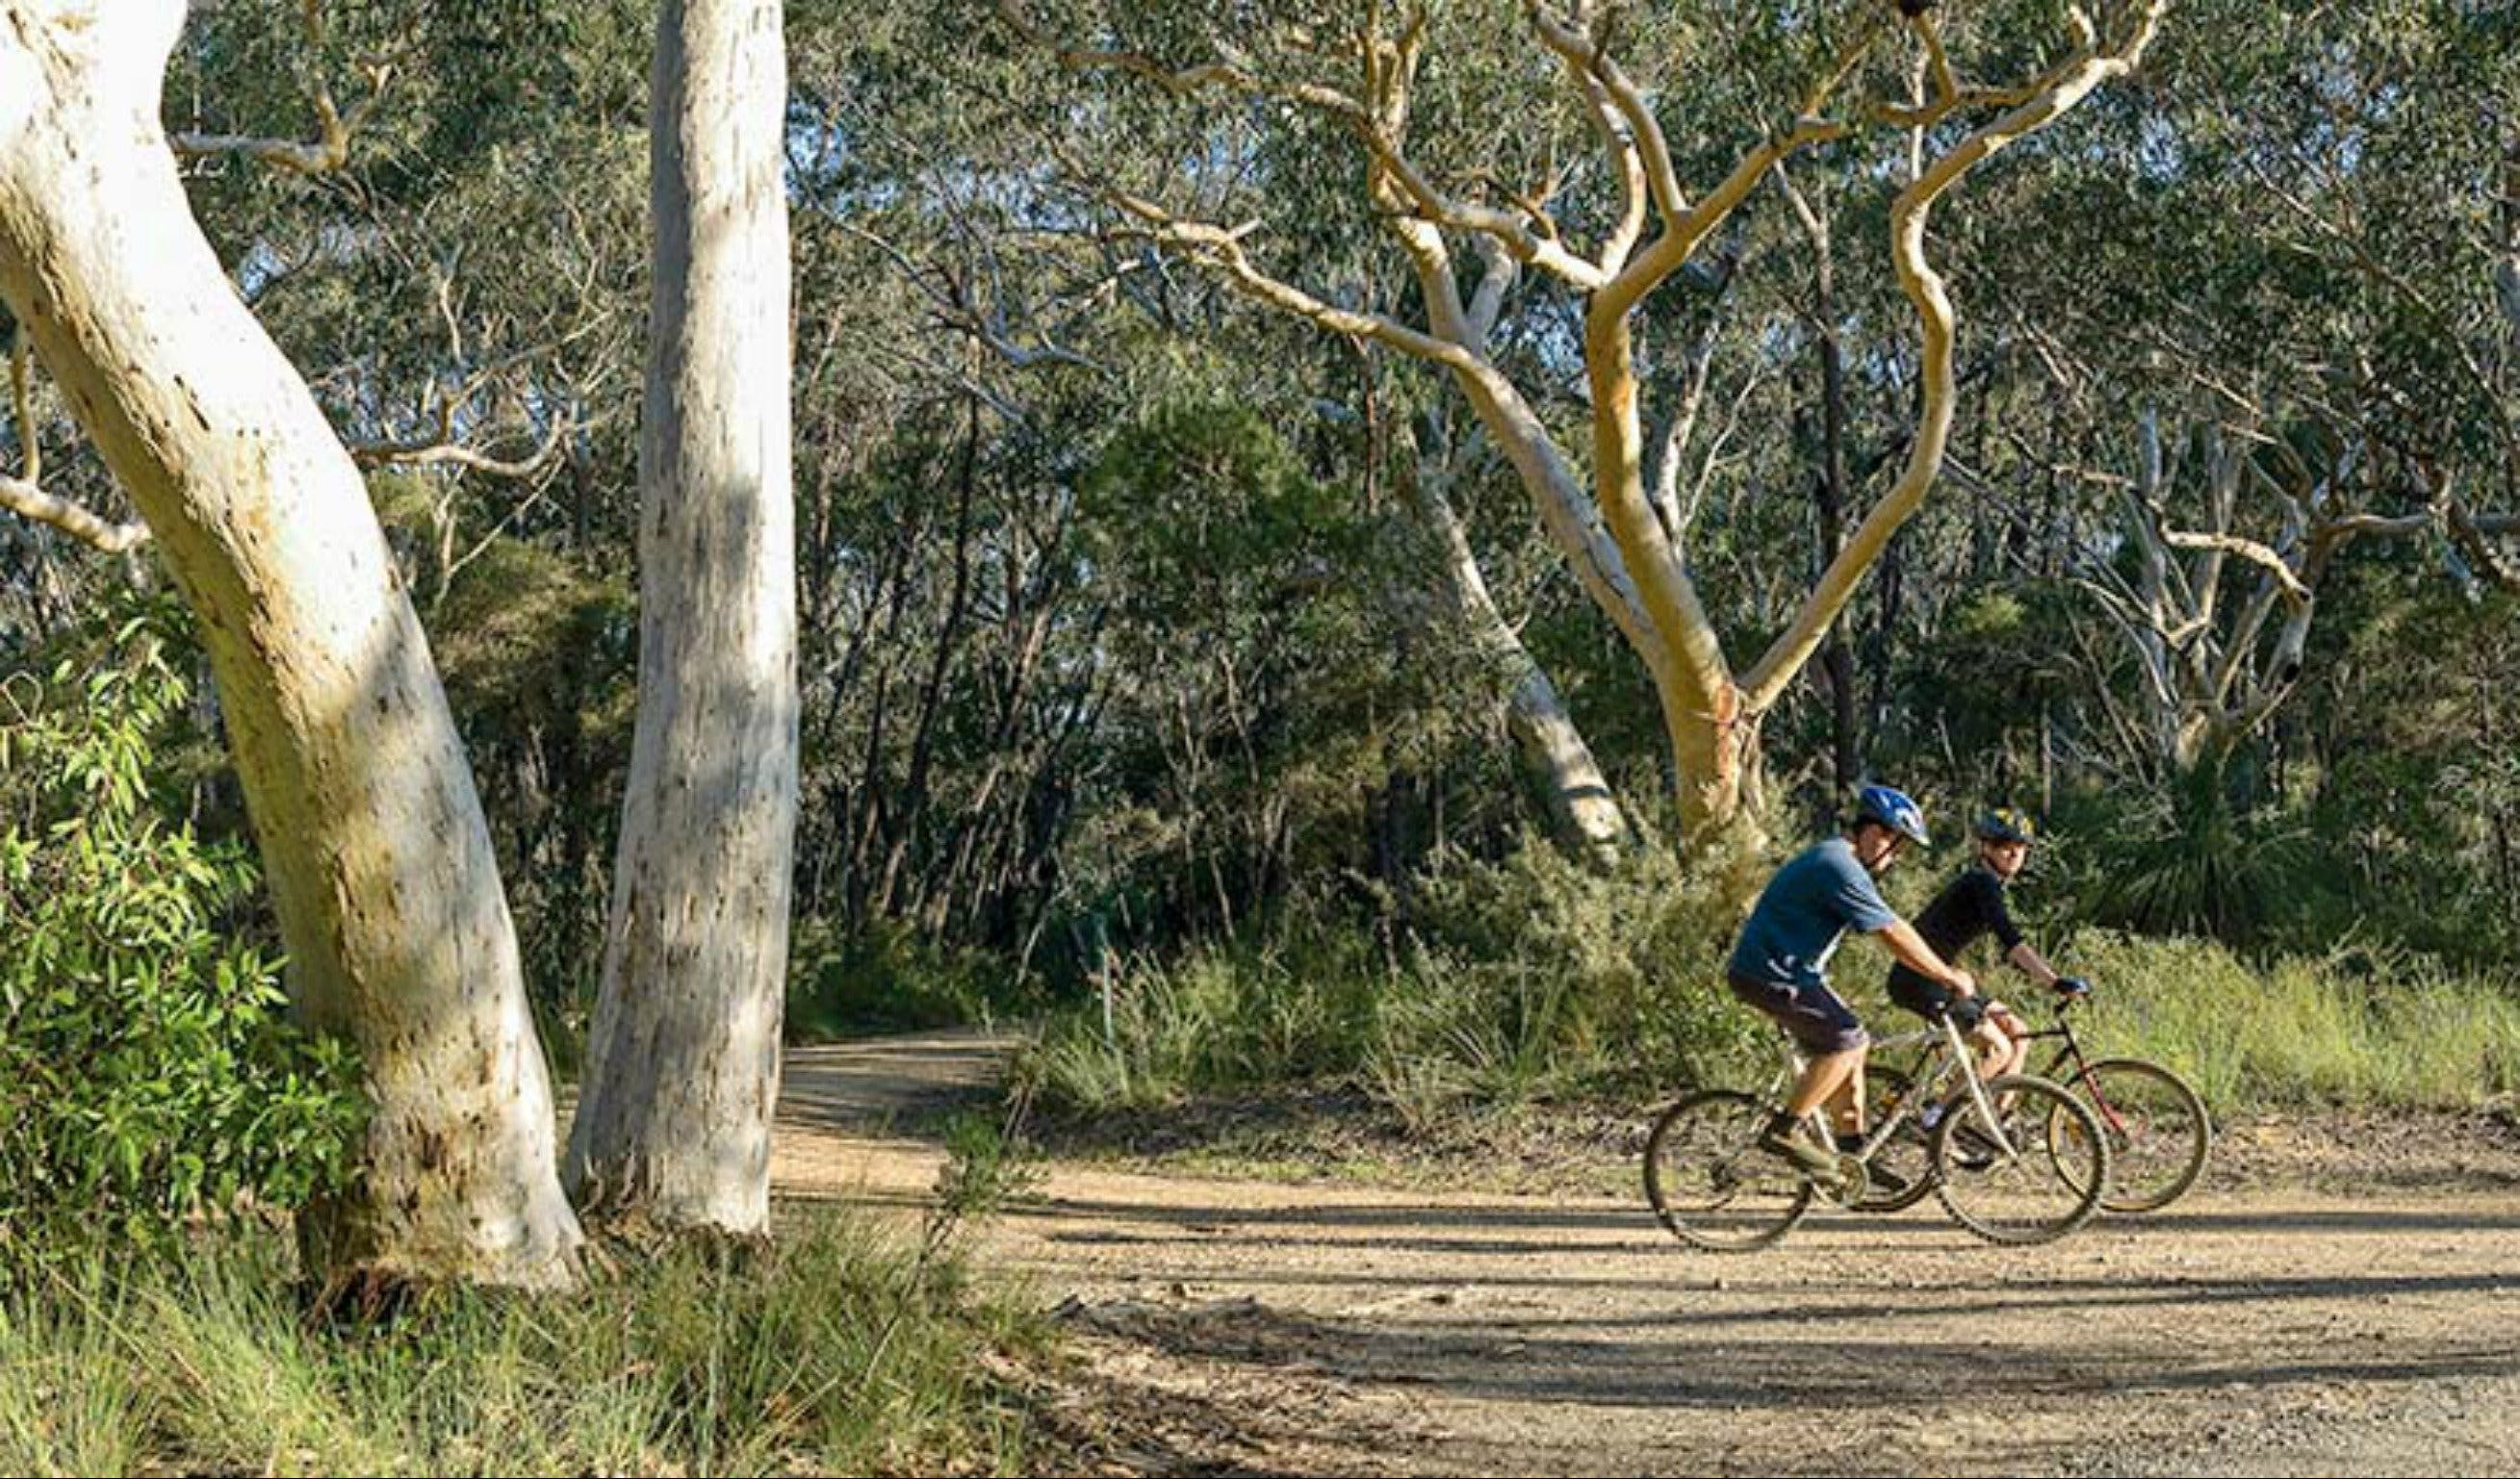 Bundanoon cycling route - Surfers Paradise Gold Coast